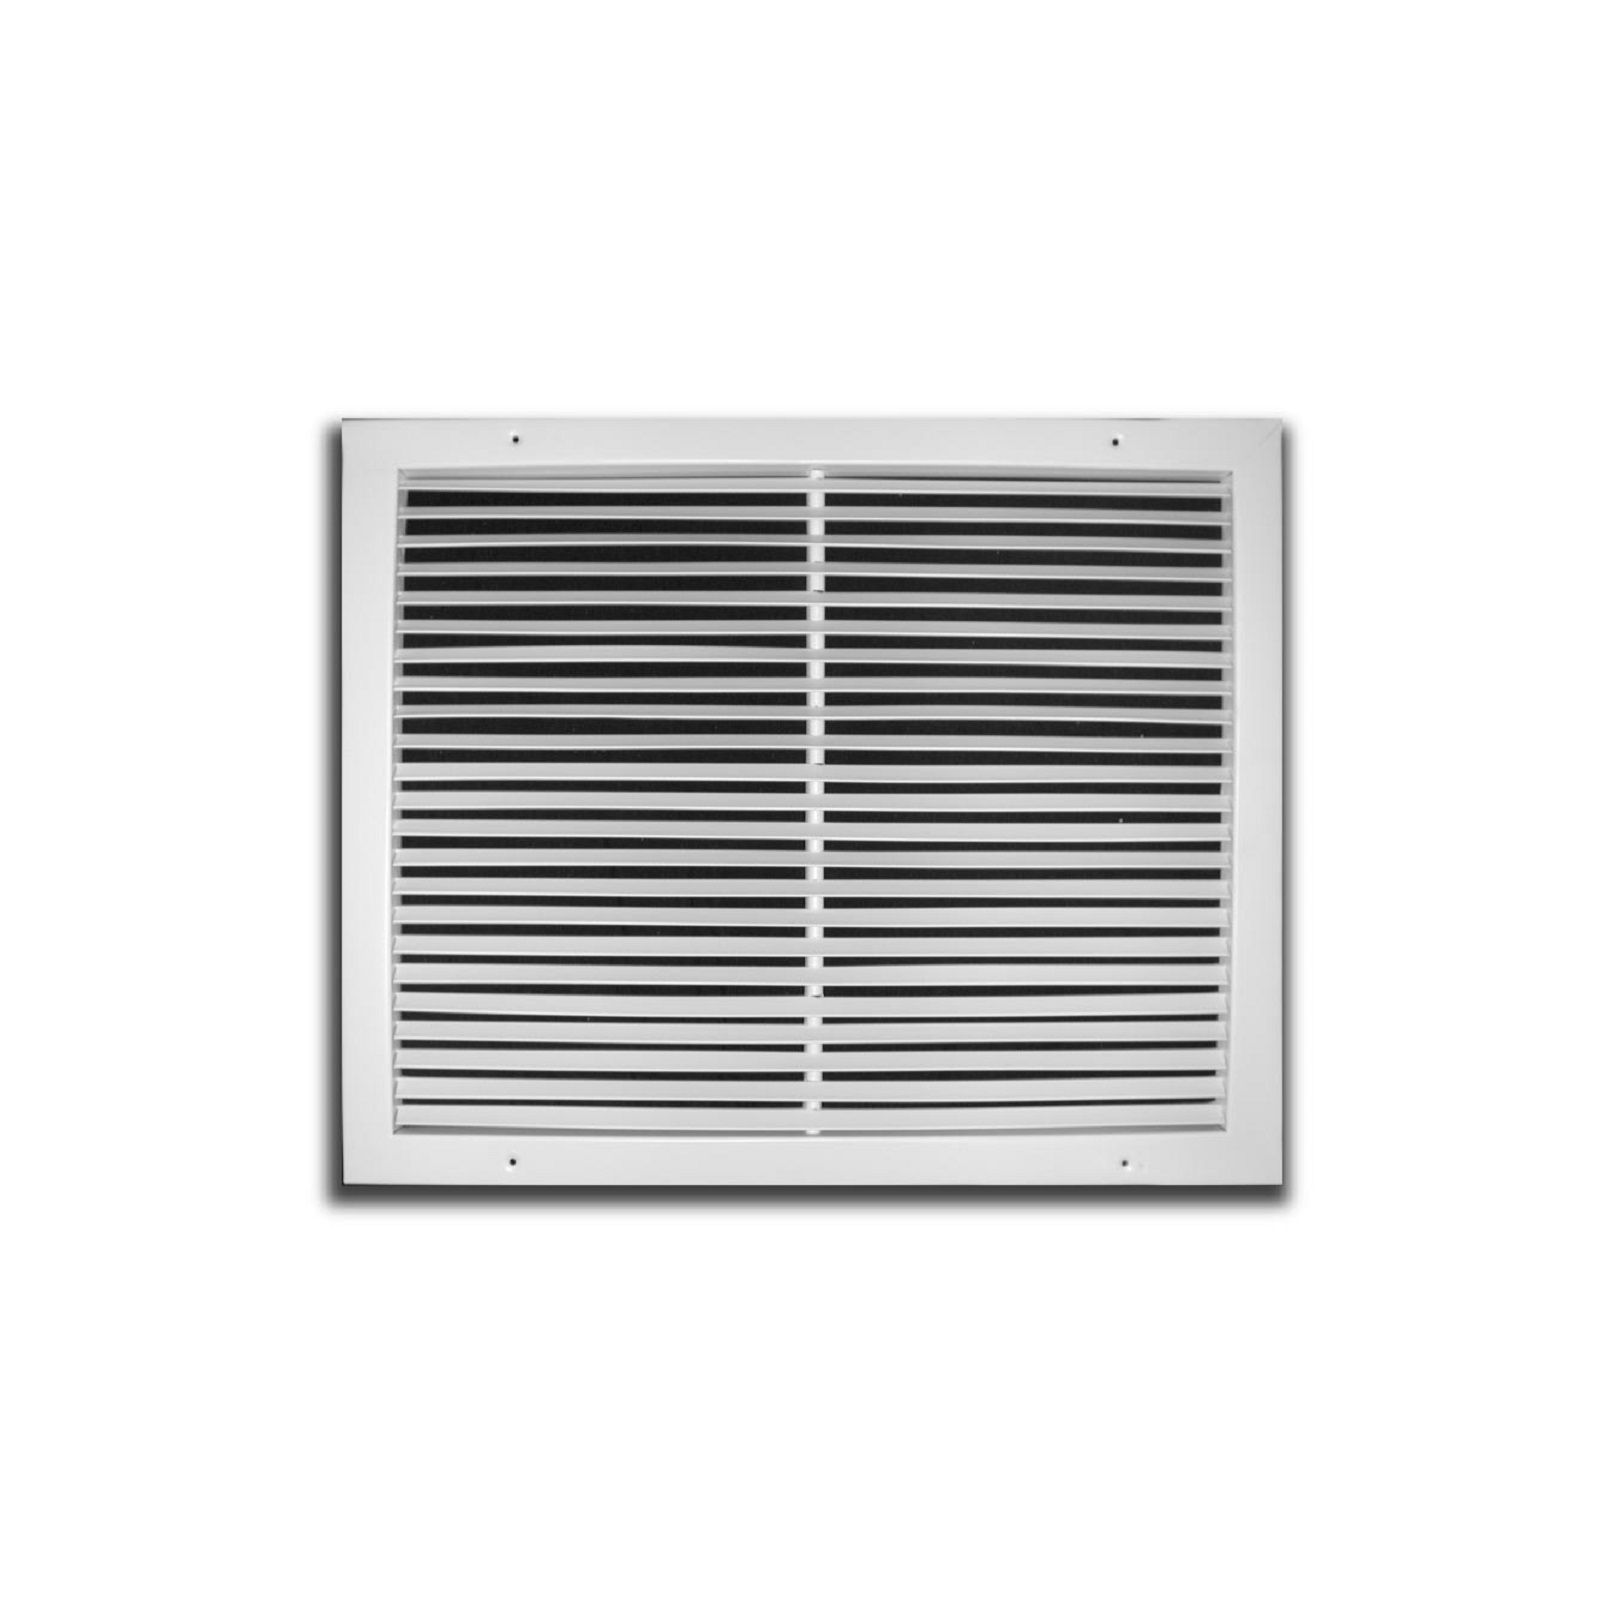 "TRUaire 270 20X06 - Steel Fixed Bar Return Air Grille, White, 20"" X 06"""